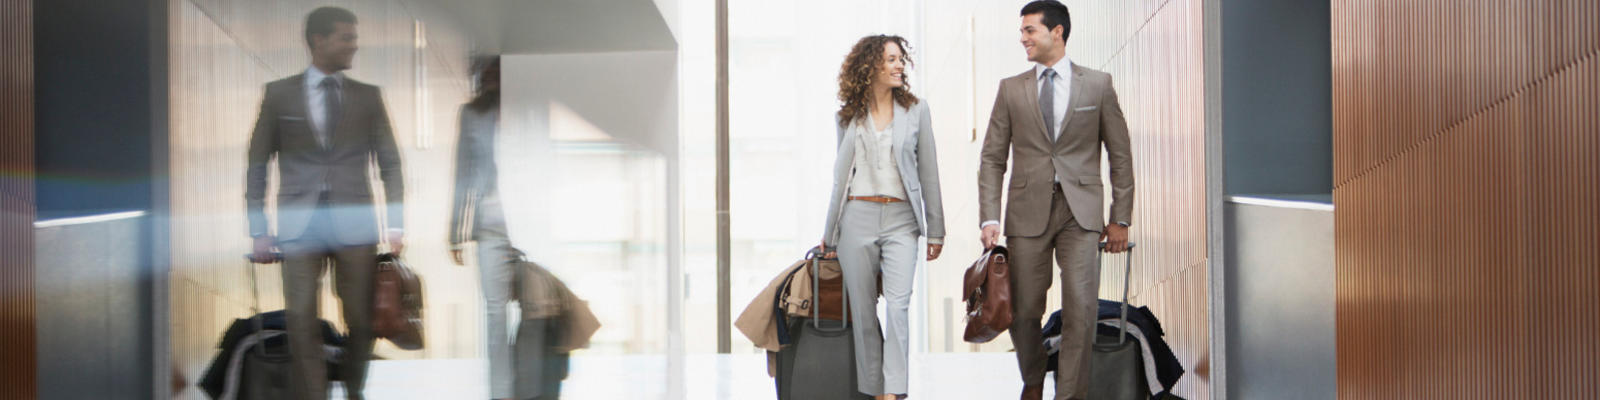 Two co-workers walking together through an airport with their carry-ons in tow